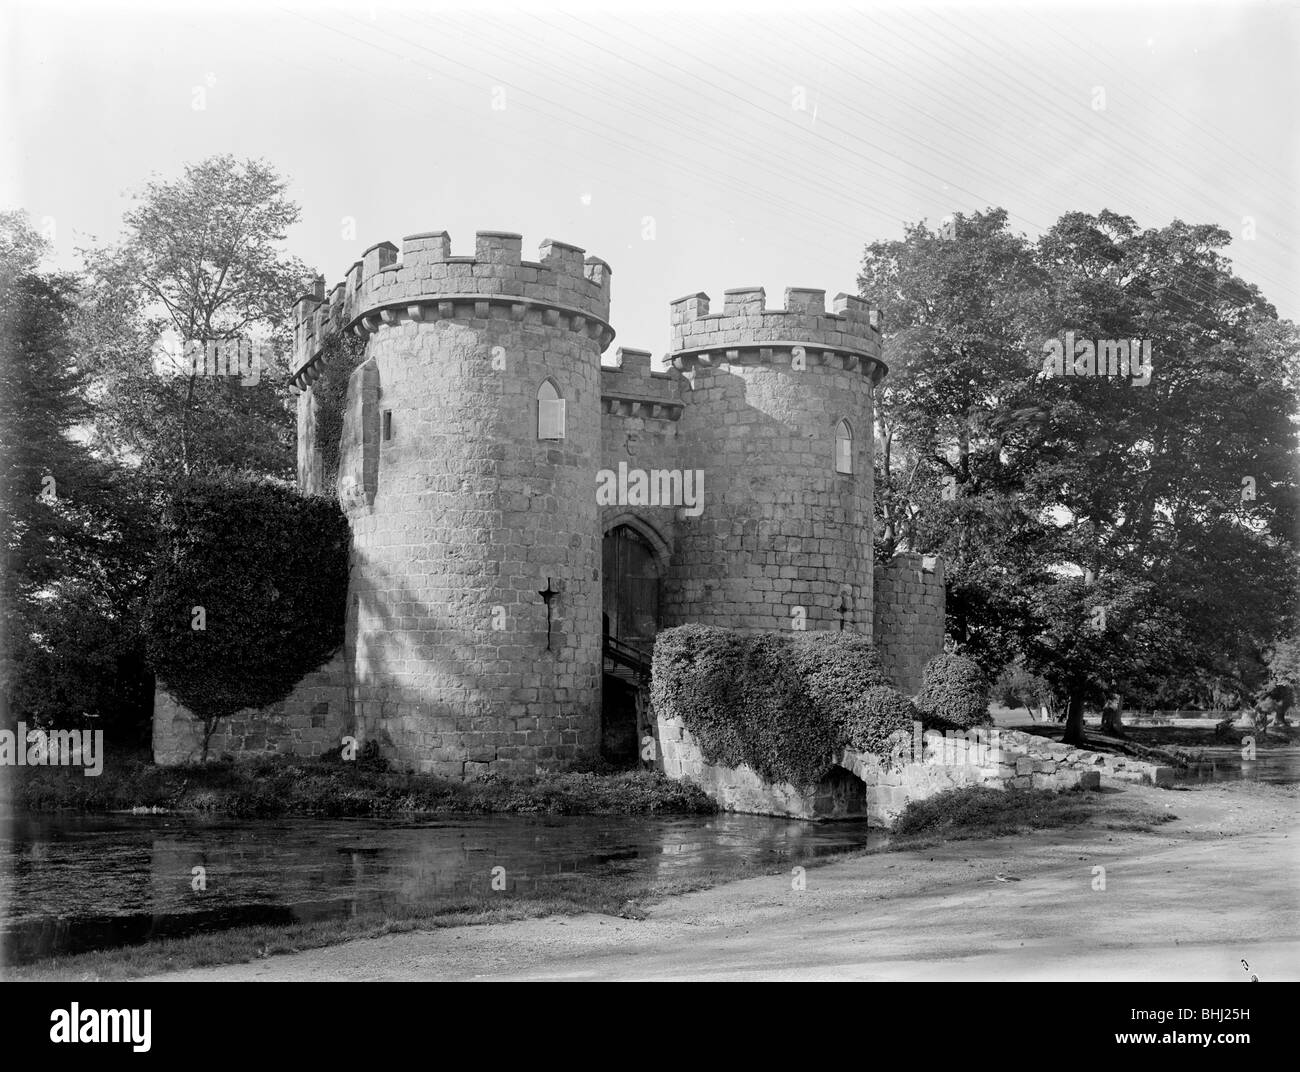 Gatehouse at Whittington Castle, Shropshire, 1935. Artist: Nathaniel Lloyd - Stock Image